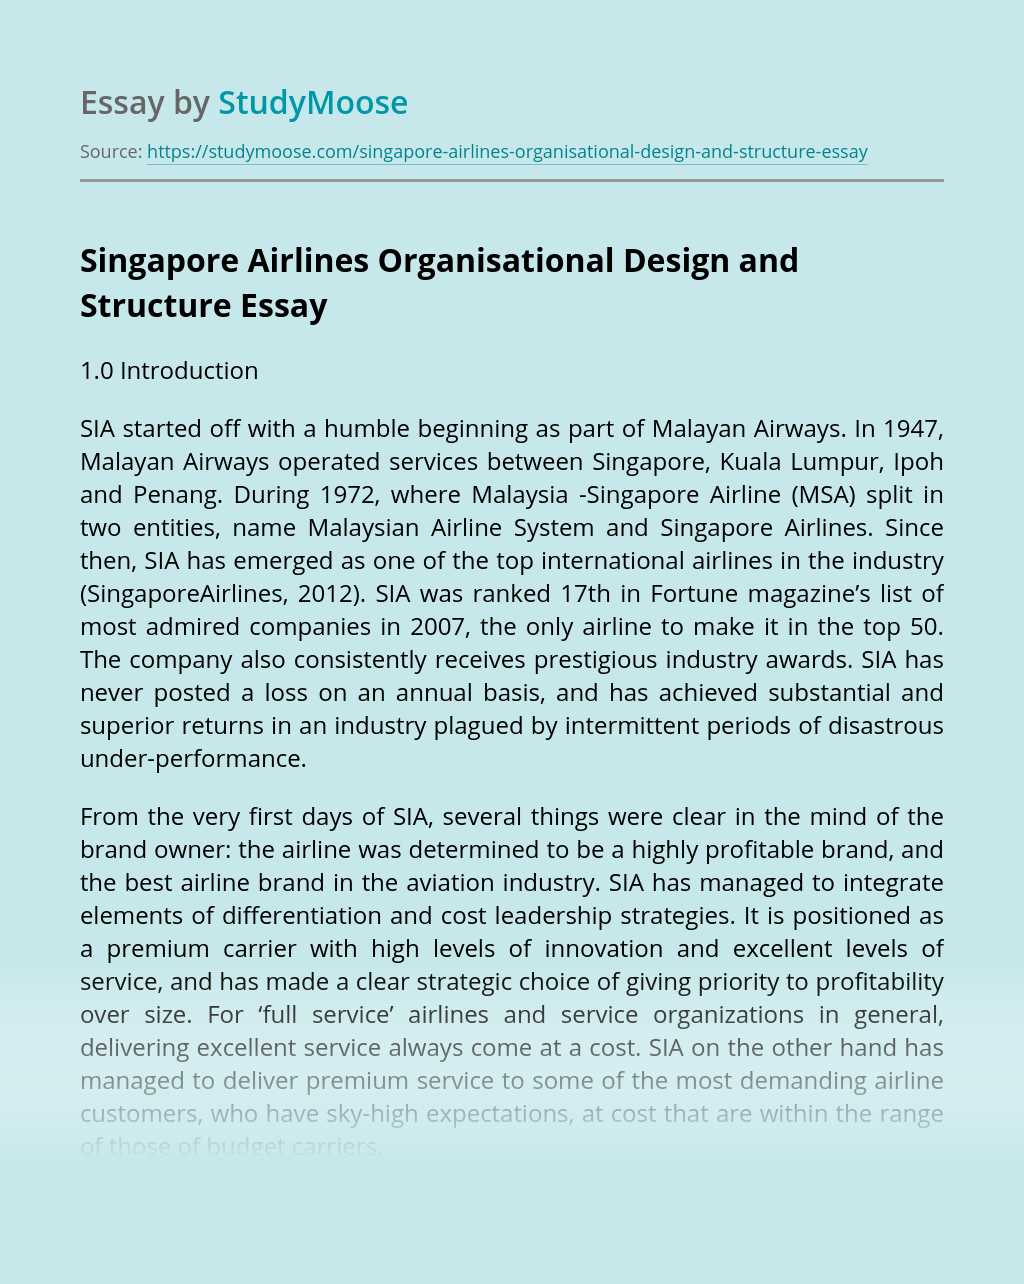 Singapore Airlines Organisational Design and Structure